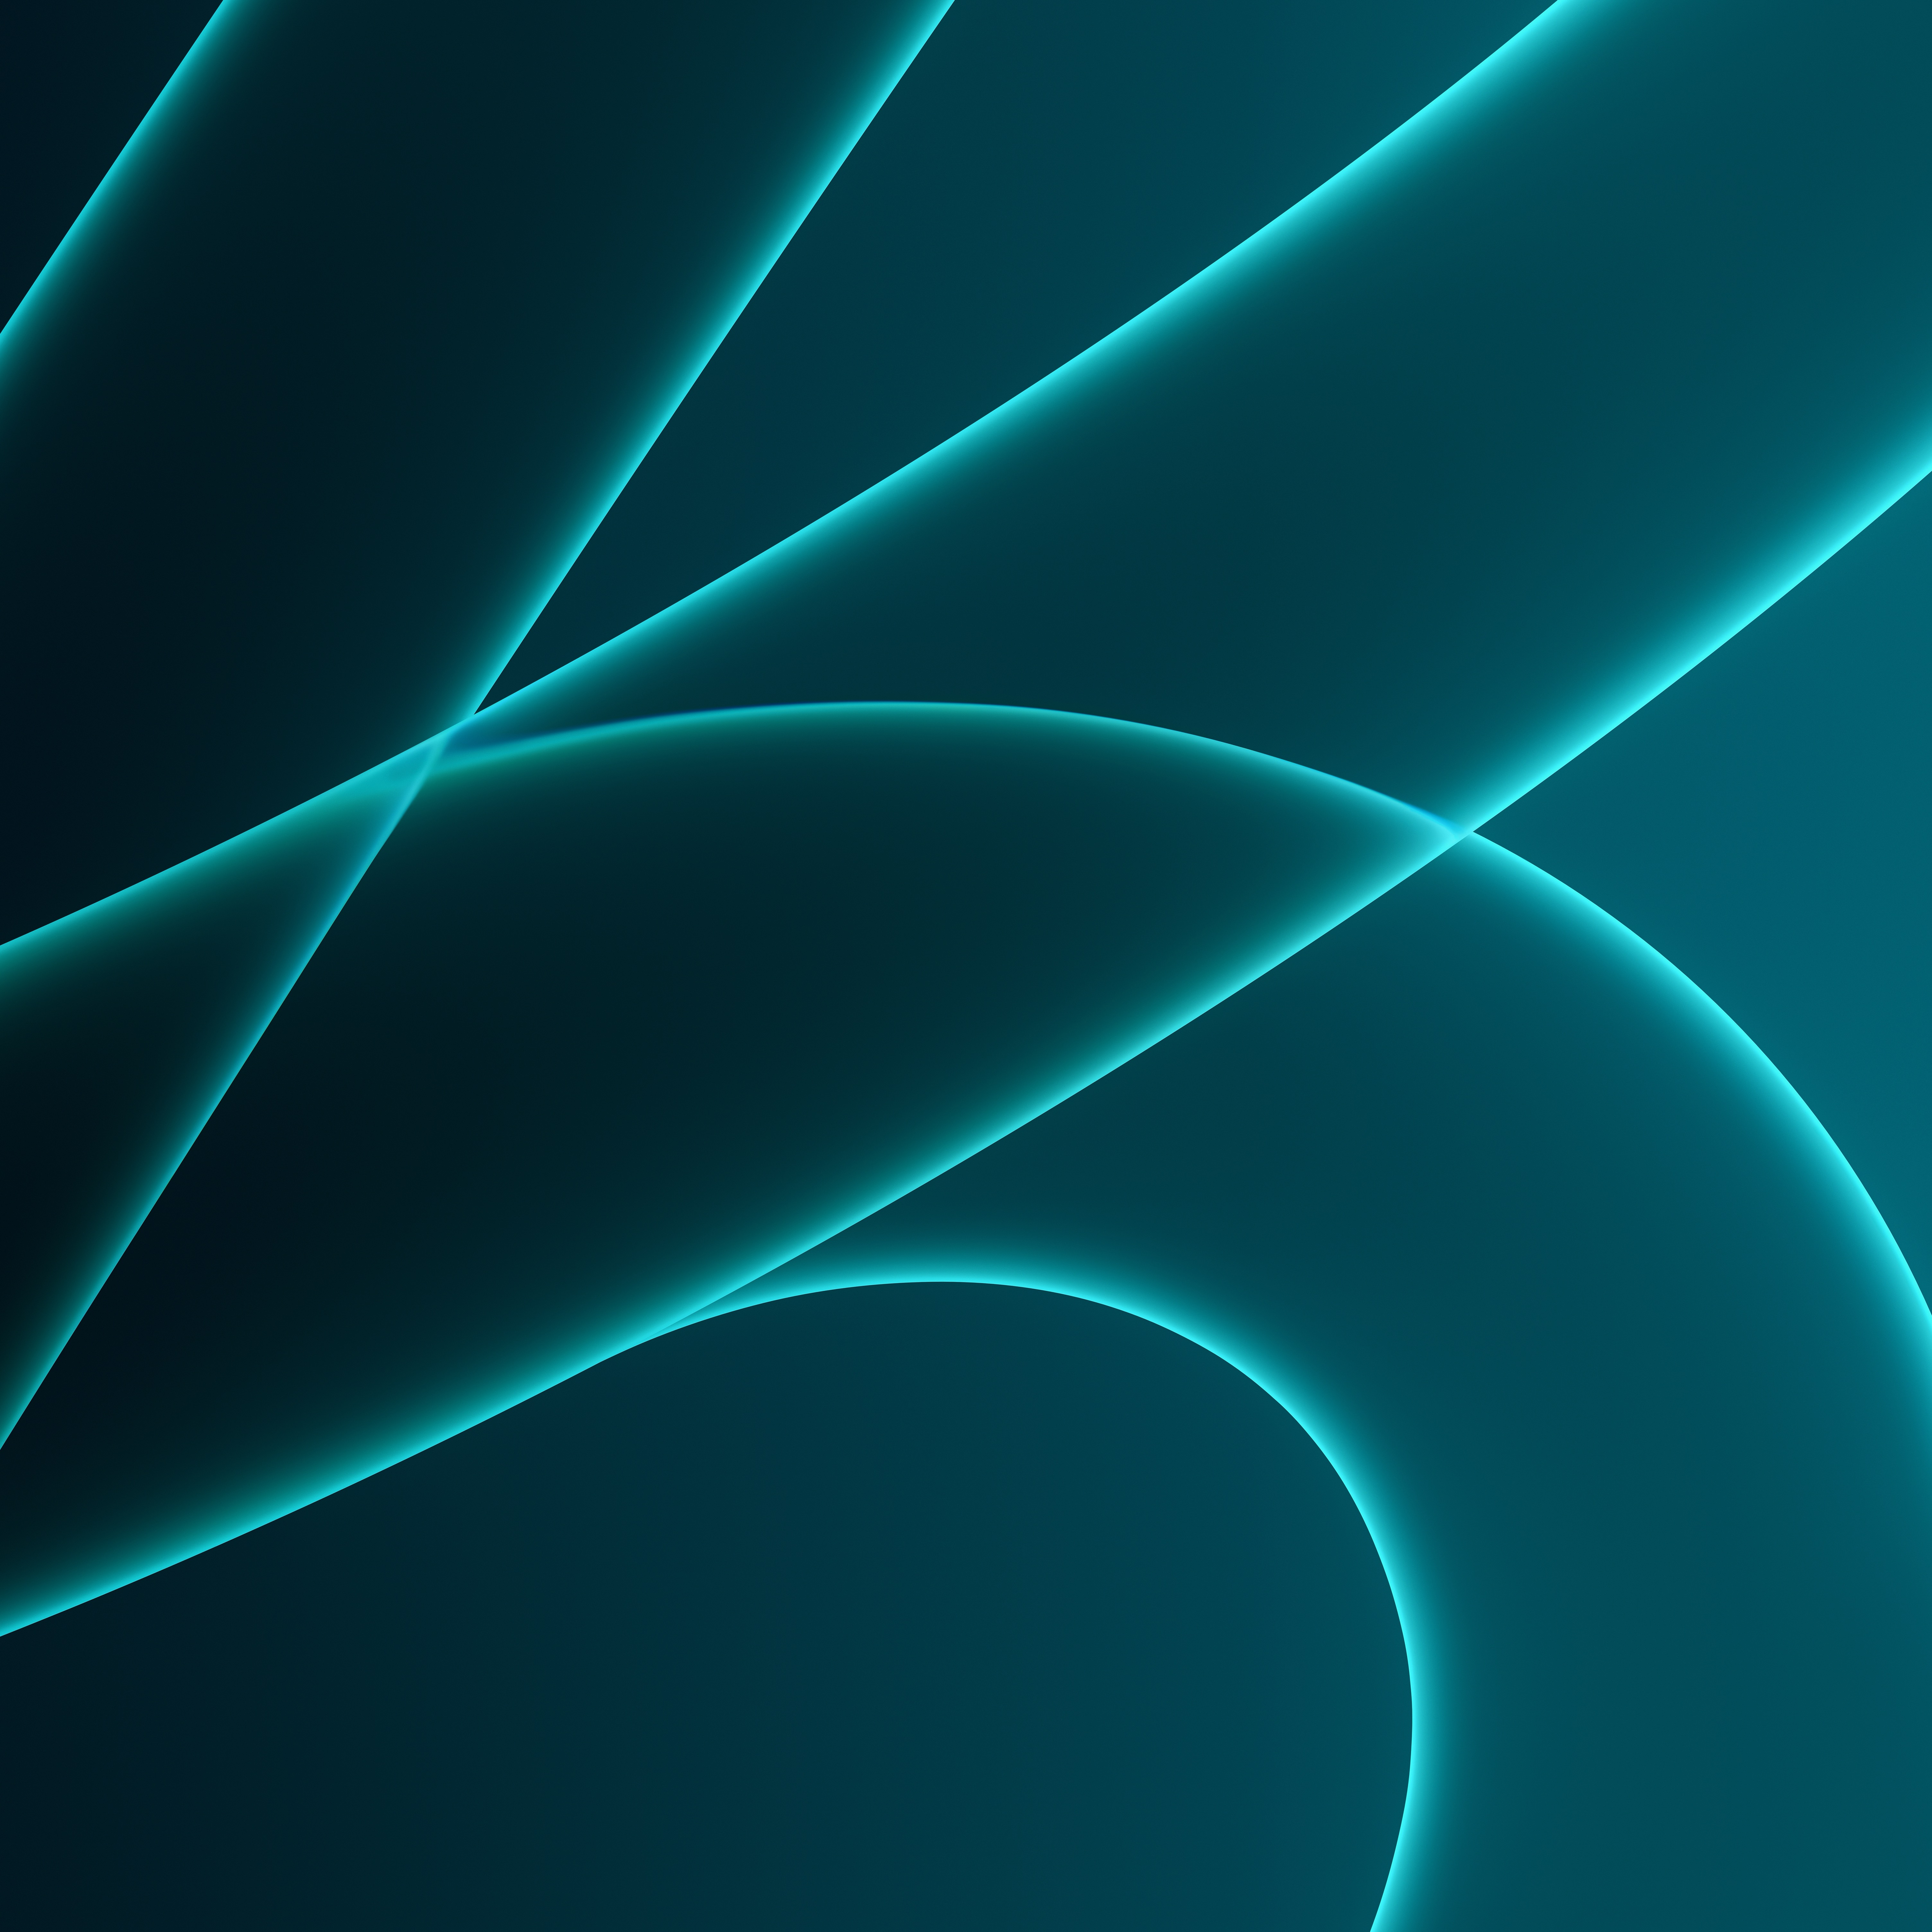 New Imac Color Matching Wallpapers For Iphone Ipad And Desktop